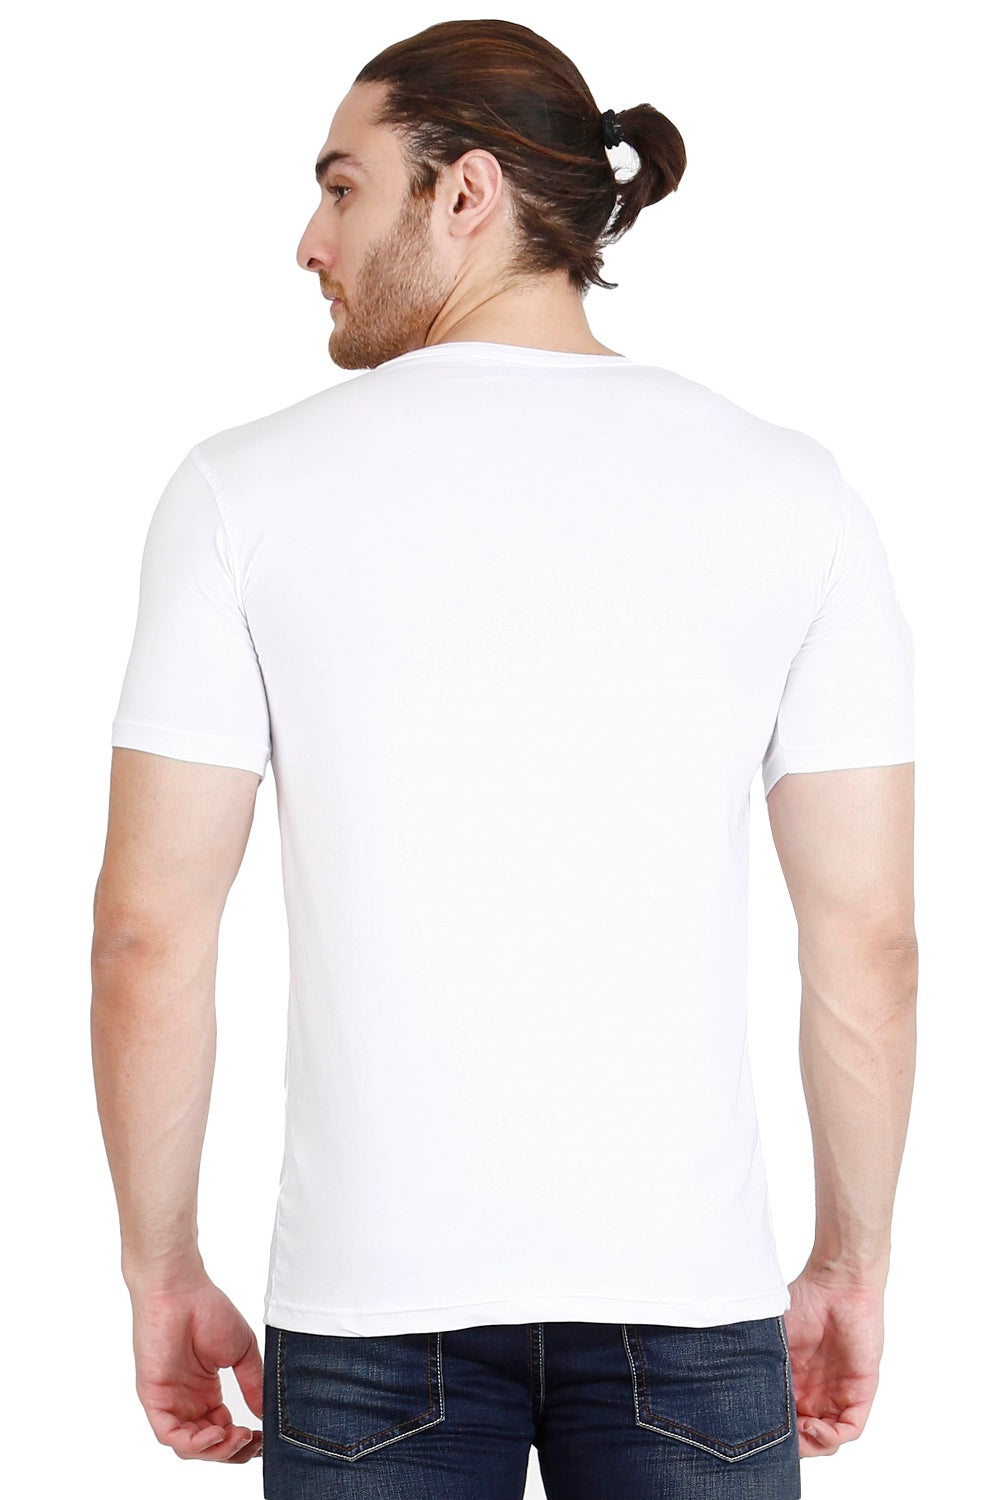 Hunt and Howe Men's White Printed T-Shirt